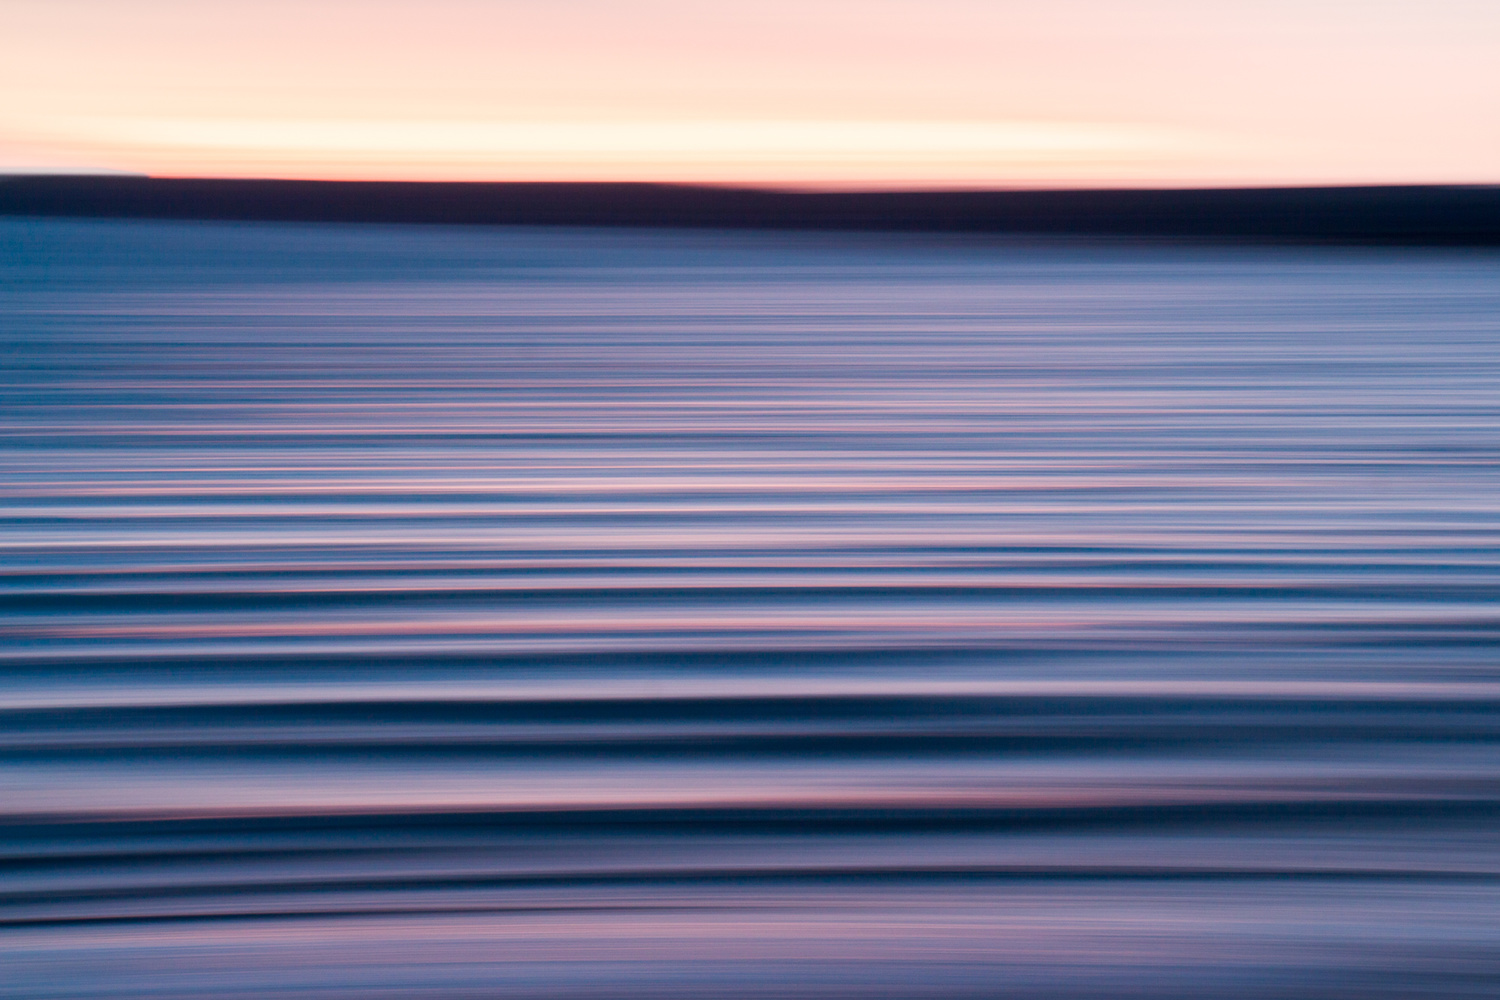 Abstract photograph of the sunset reflecting off of waves.